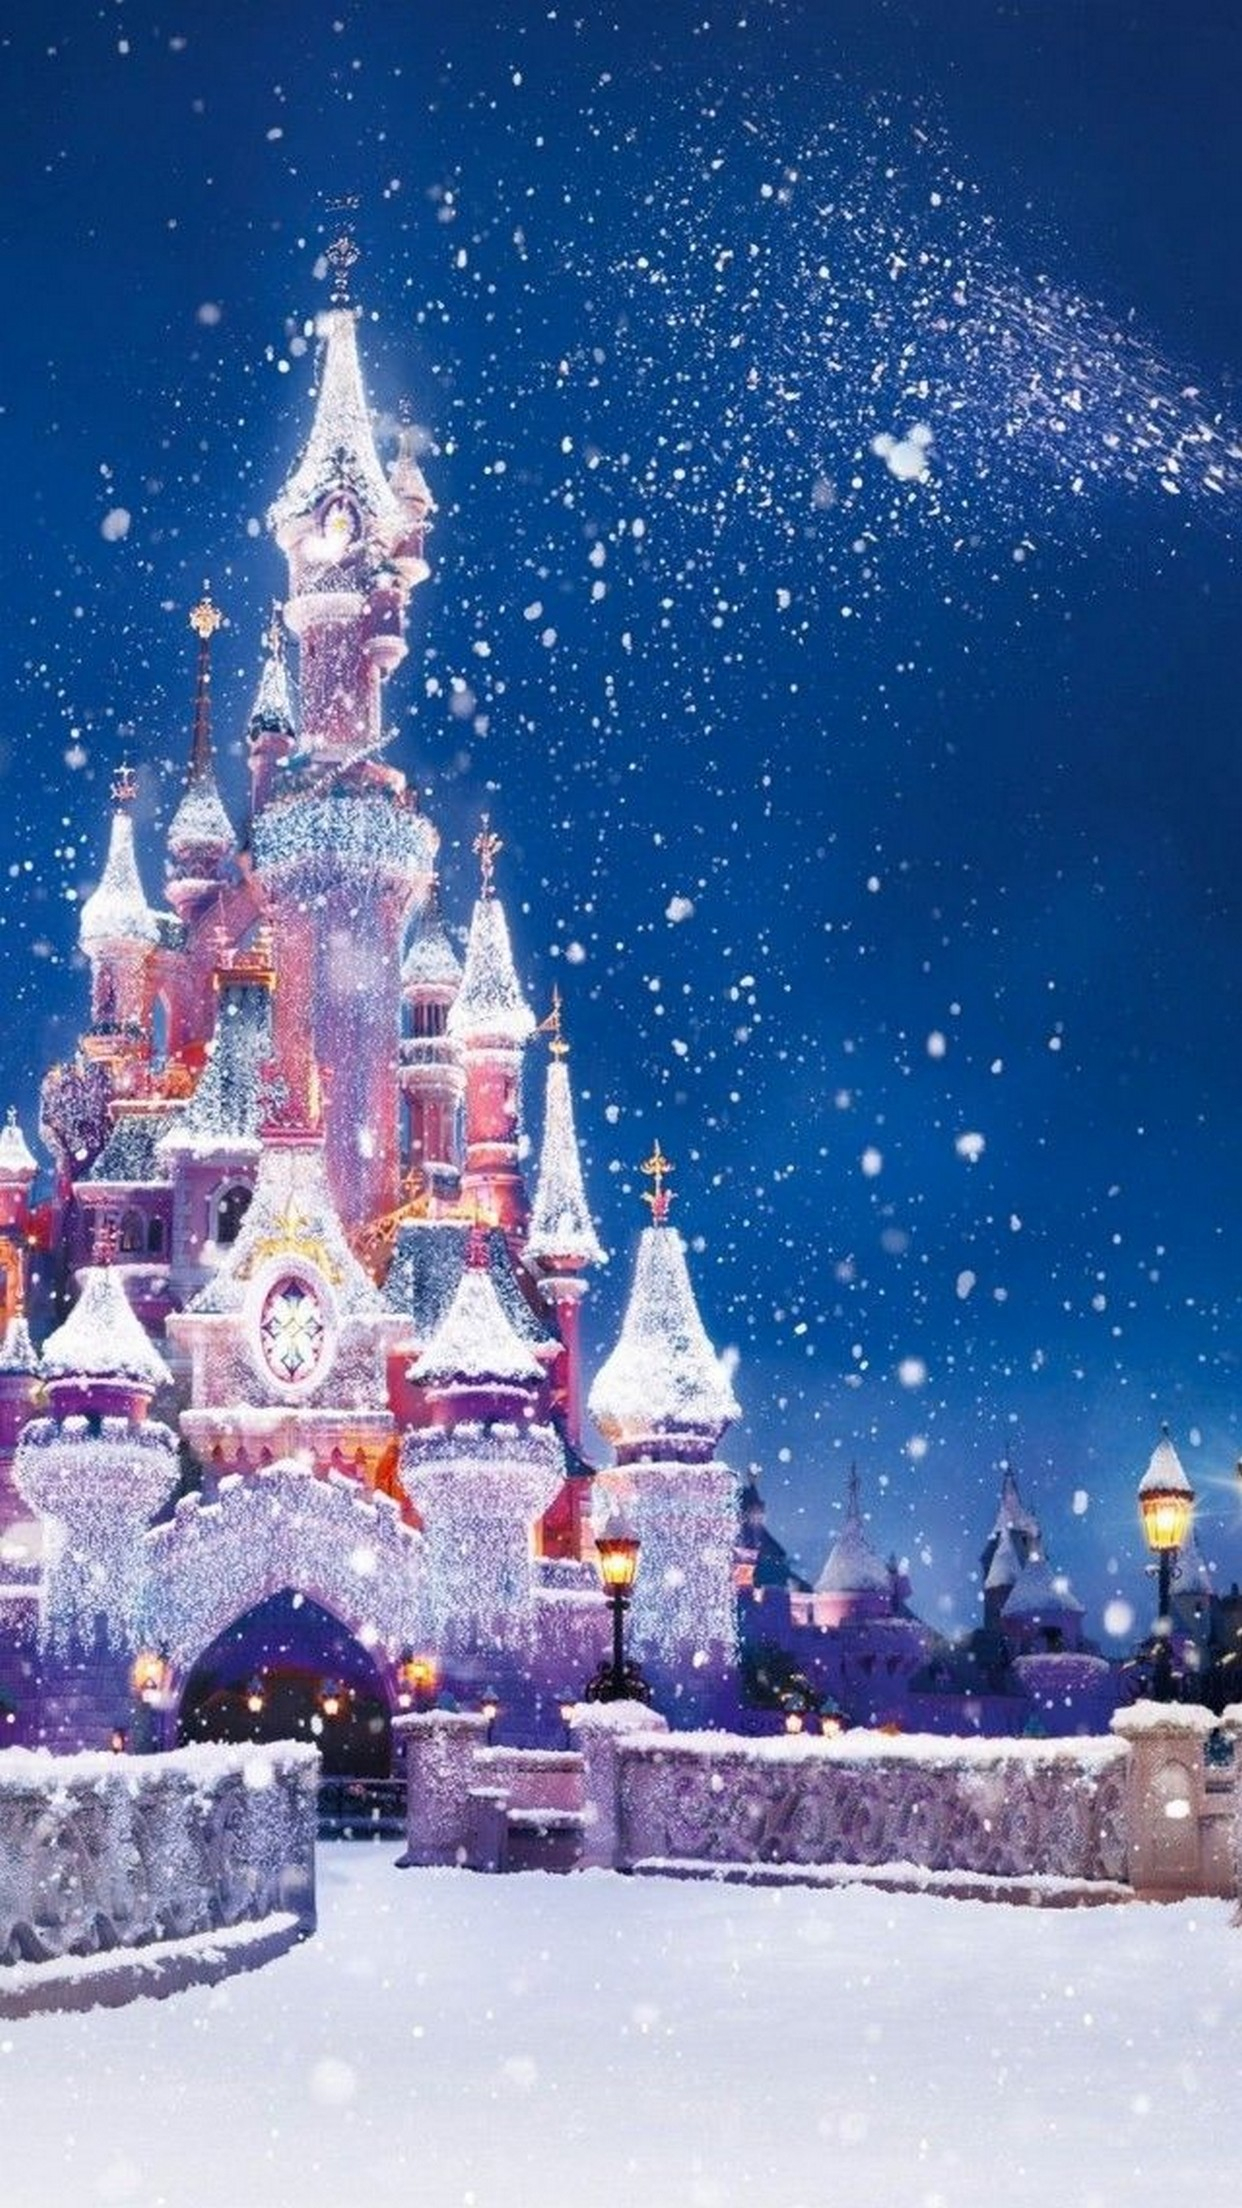 Christmas Eve Wallpaper 66 Images